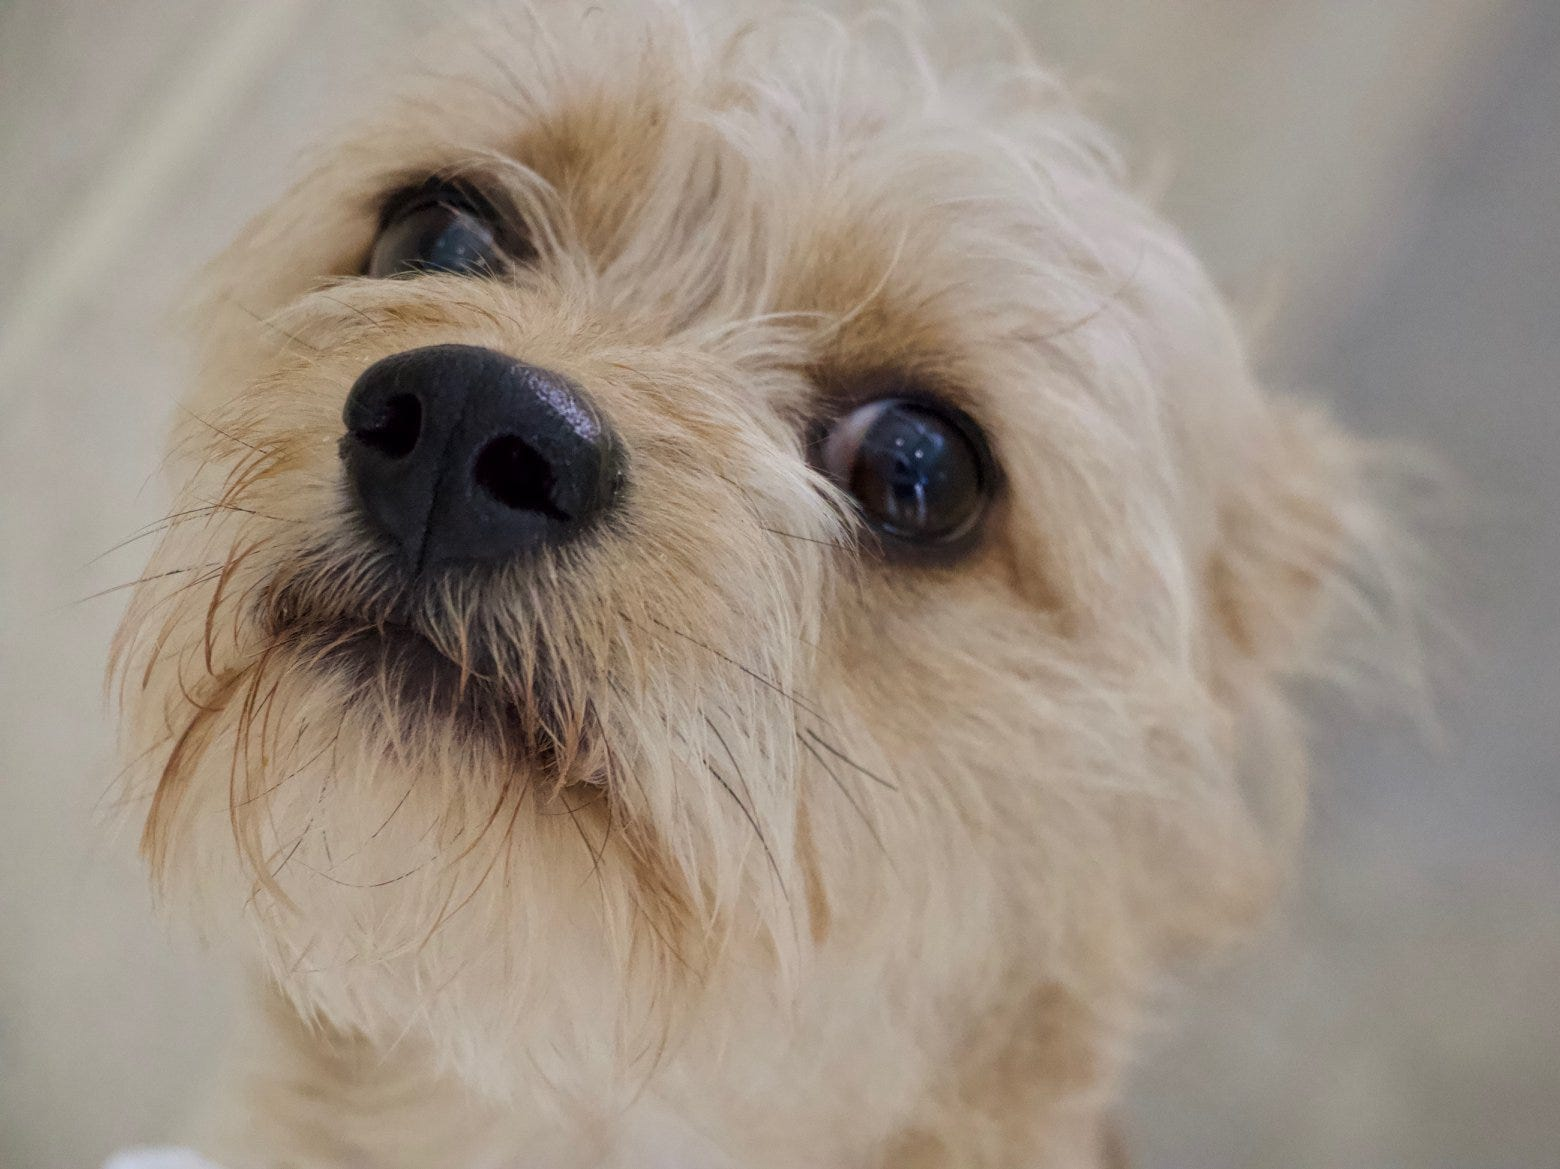 This dog will be available at the Brandywine Valley SPCA's 2018 Mega Adoption Event at the Delaware State Fairgrounds in Harrington this weekend.